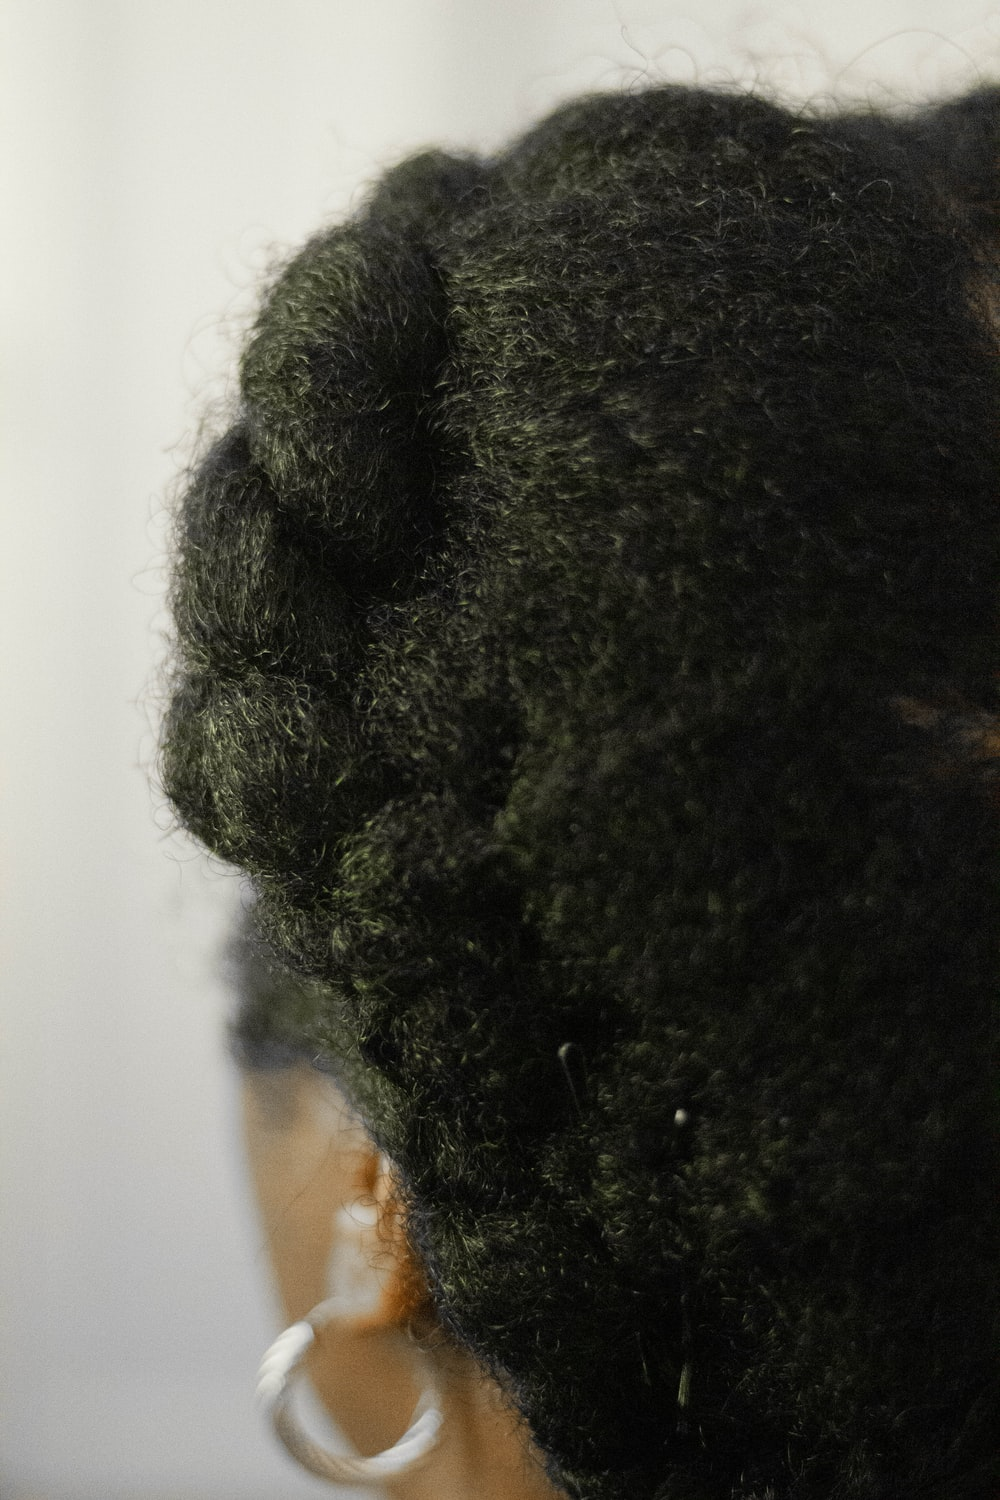 person with black curly hair